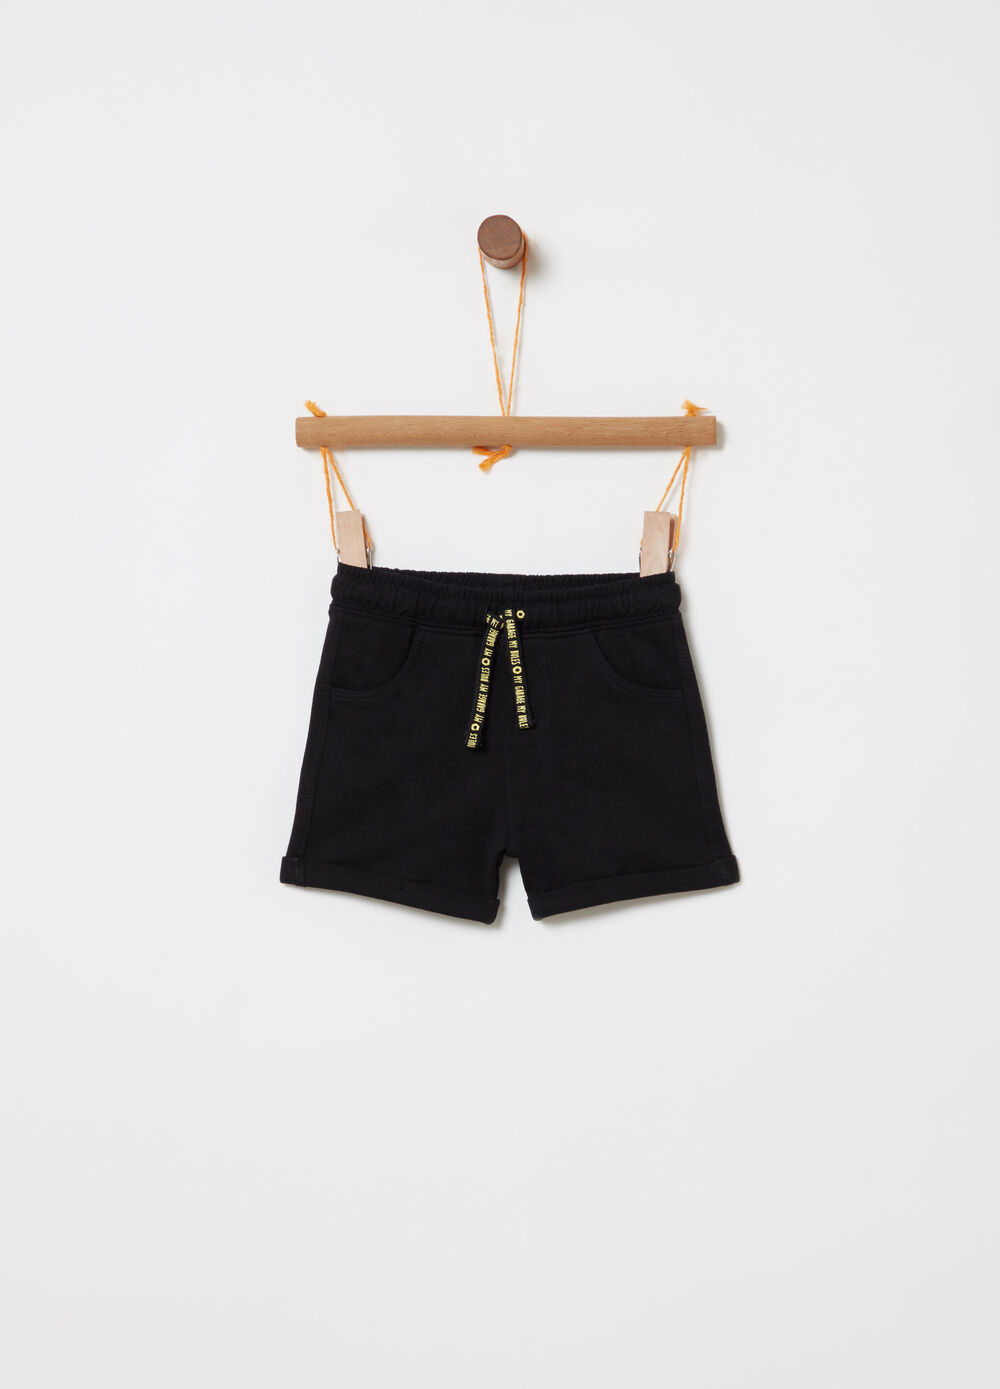 Shorts with elastic waist and pockets